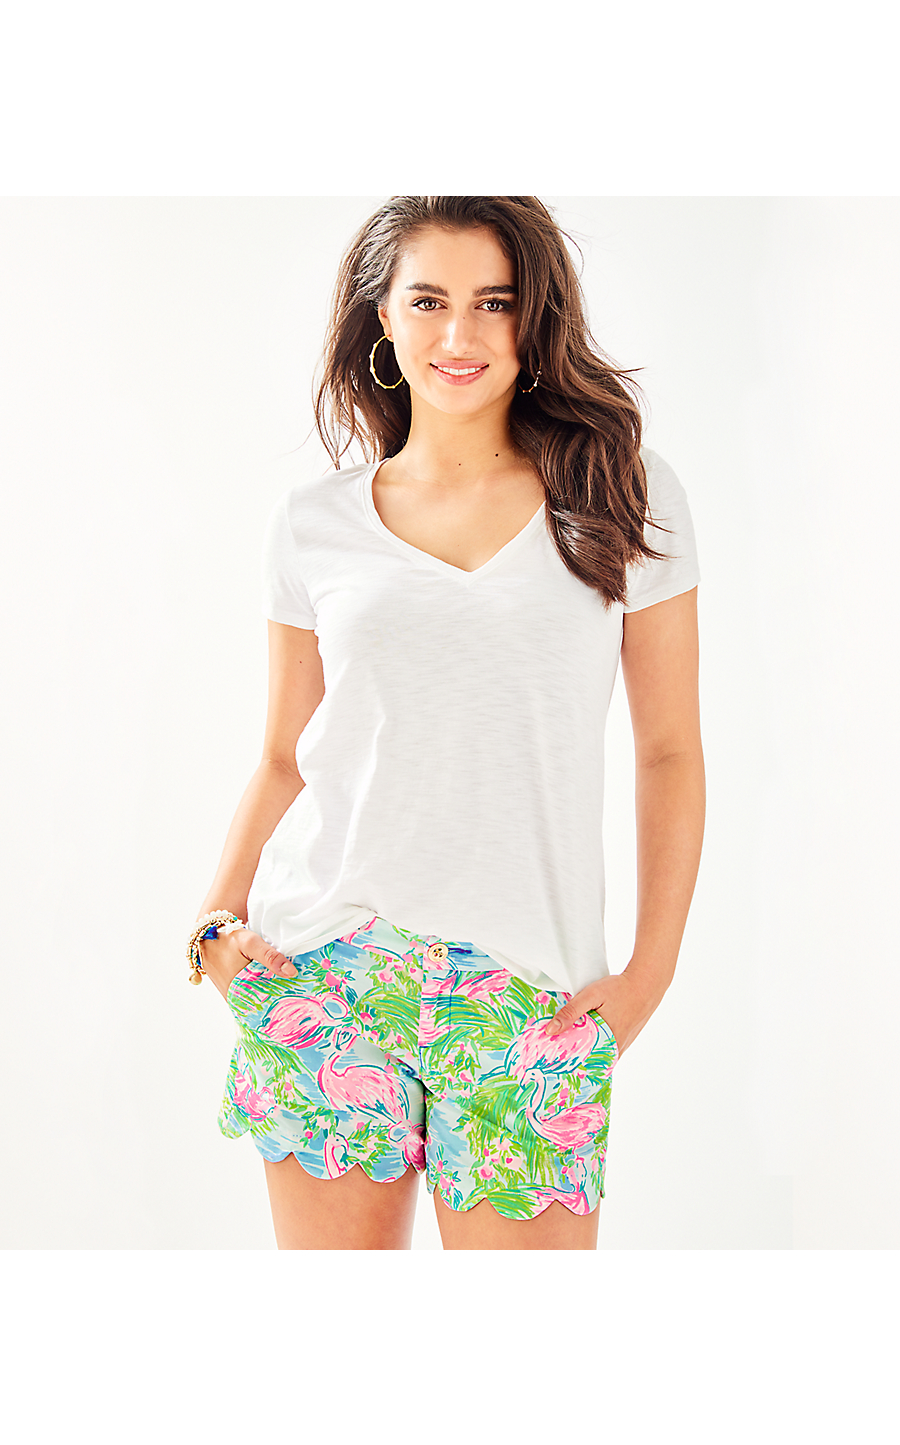 ffd0dc81a BUTTERCUP STRETCH SHORT - FLORIDITA - Lilly Pulitzer Store - Life's ...